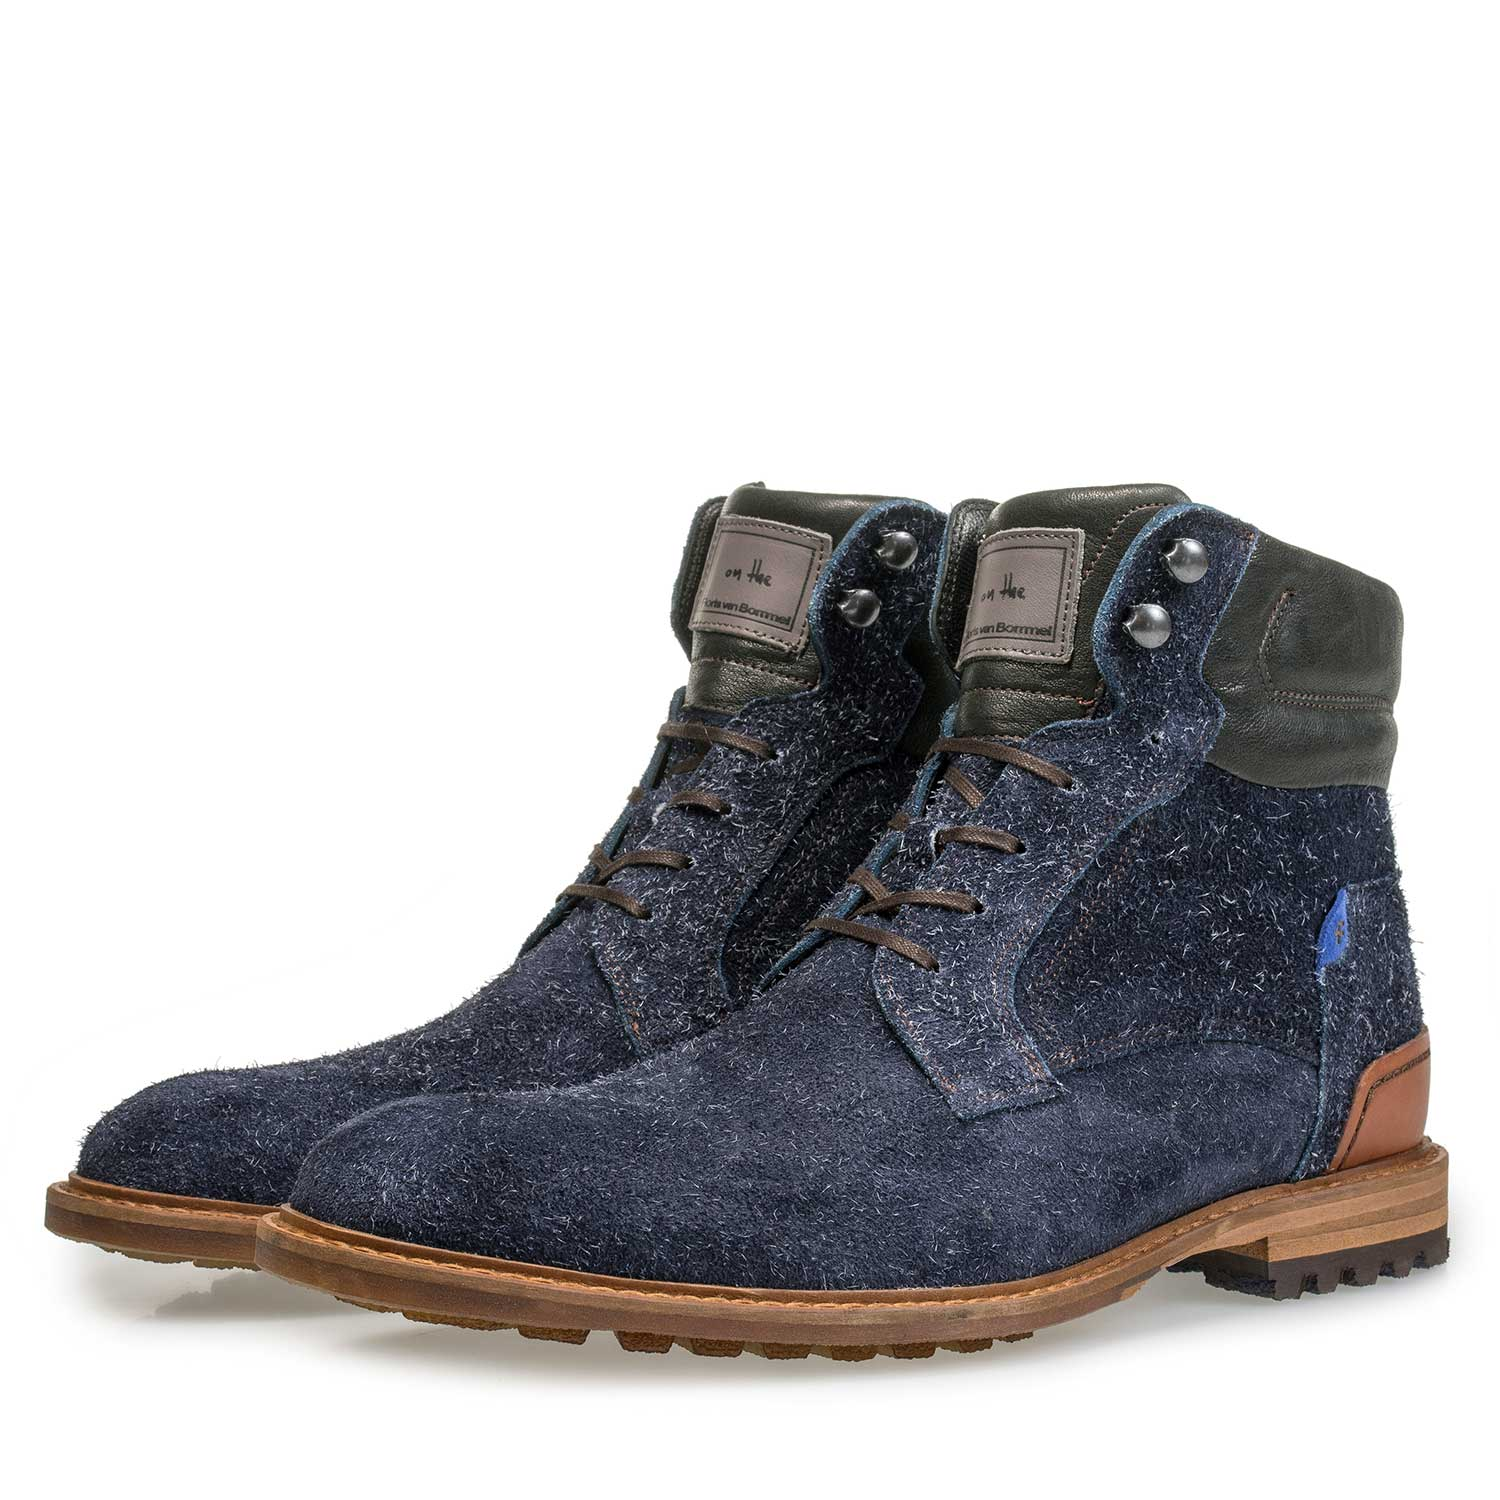 10234/15 - Blue rough-leather lace boot